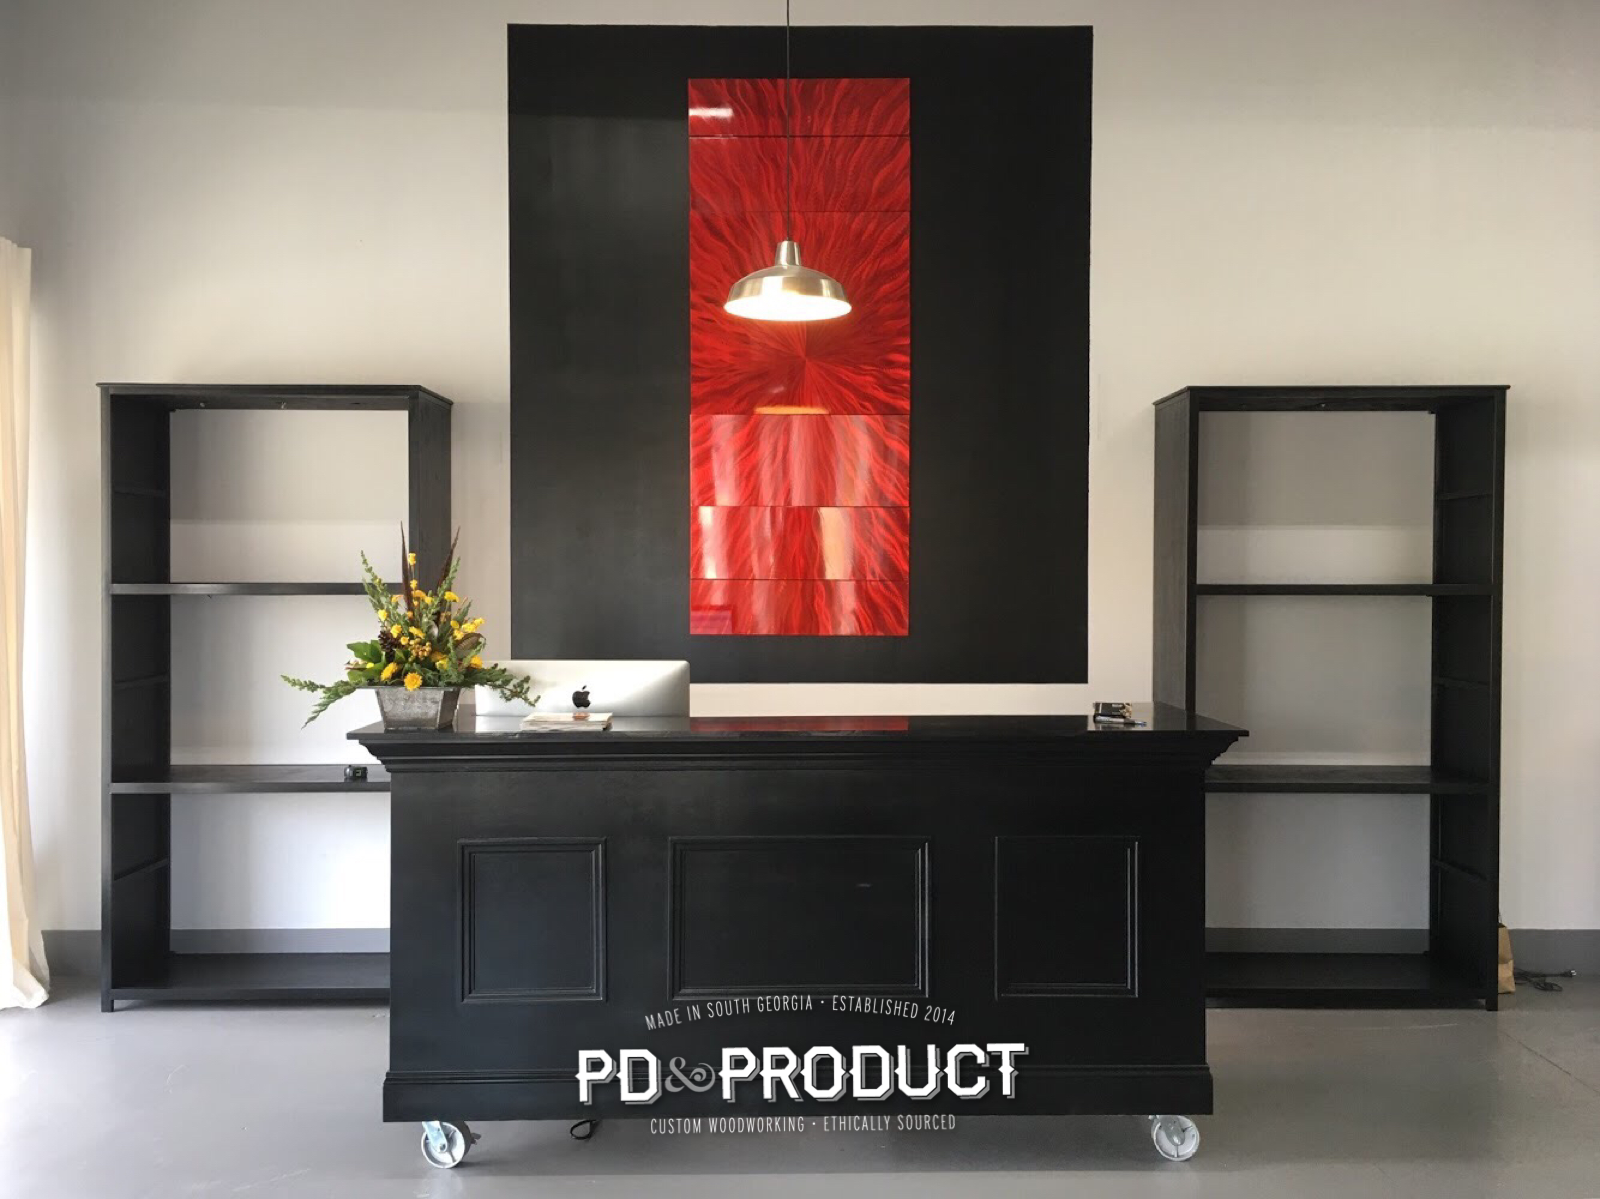 custom display furniture retail. PD And Product Custom Design Handcrafted, Reclaimed Furniture, Home Goods Gifts. Display Furniture Retail P